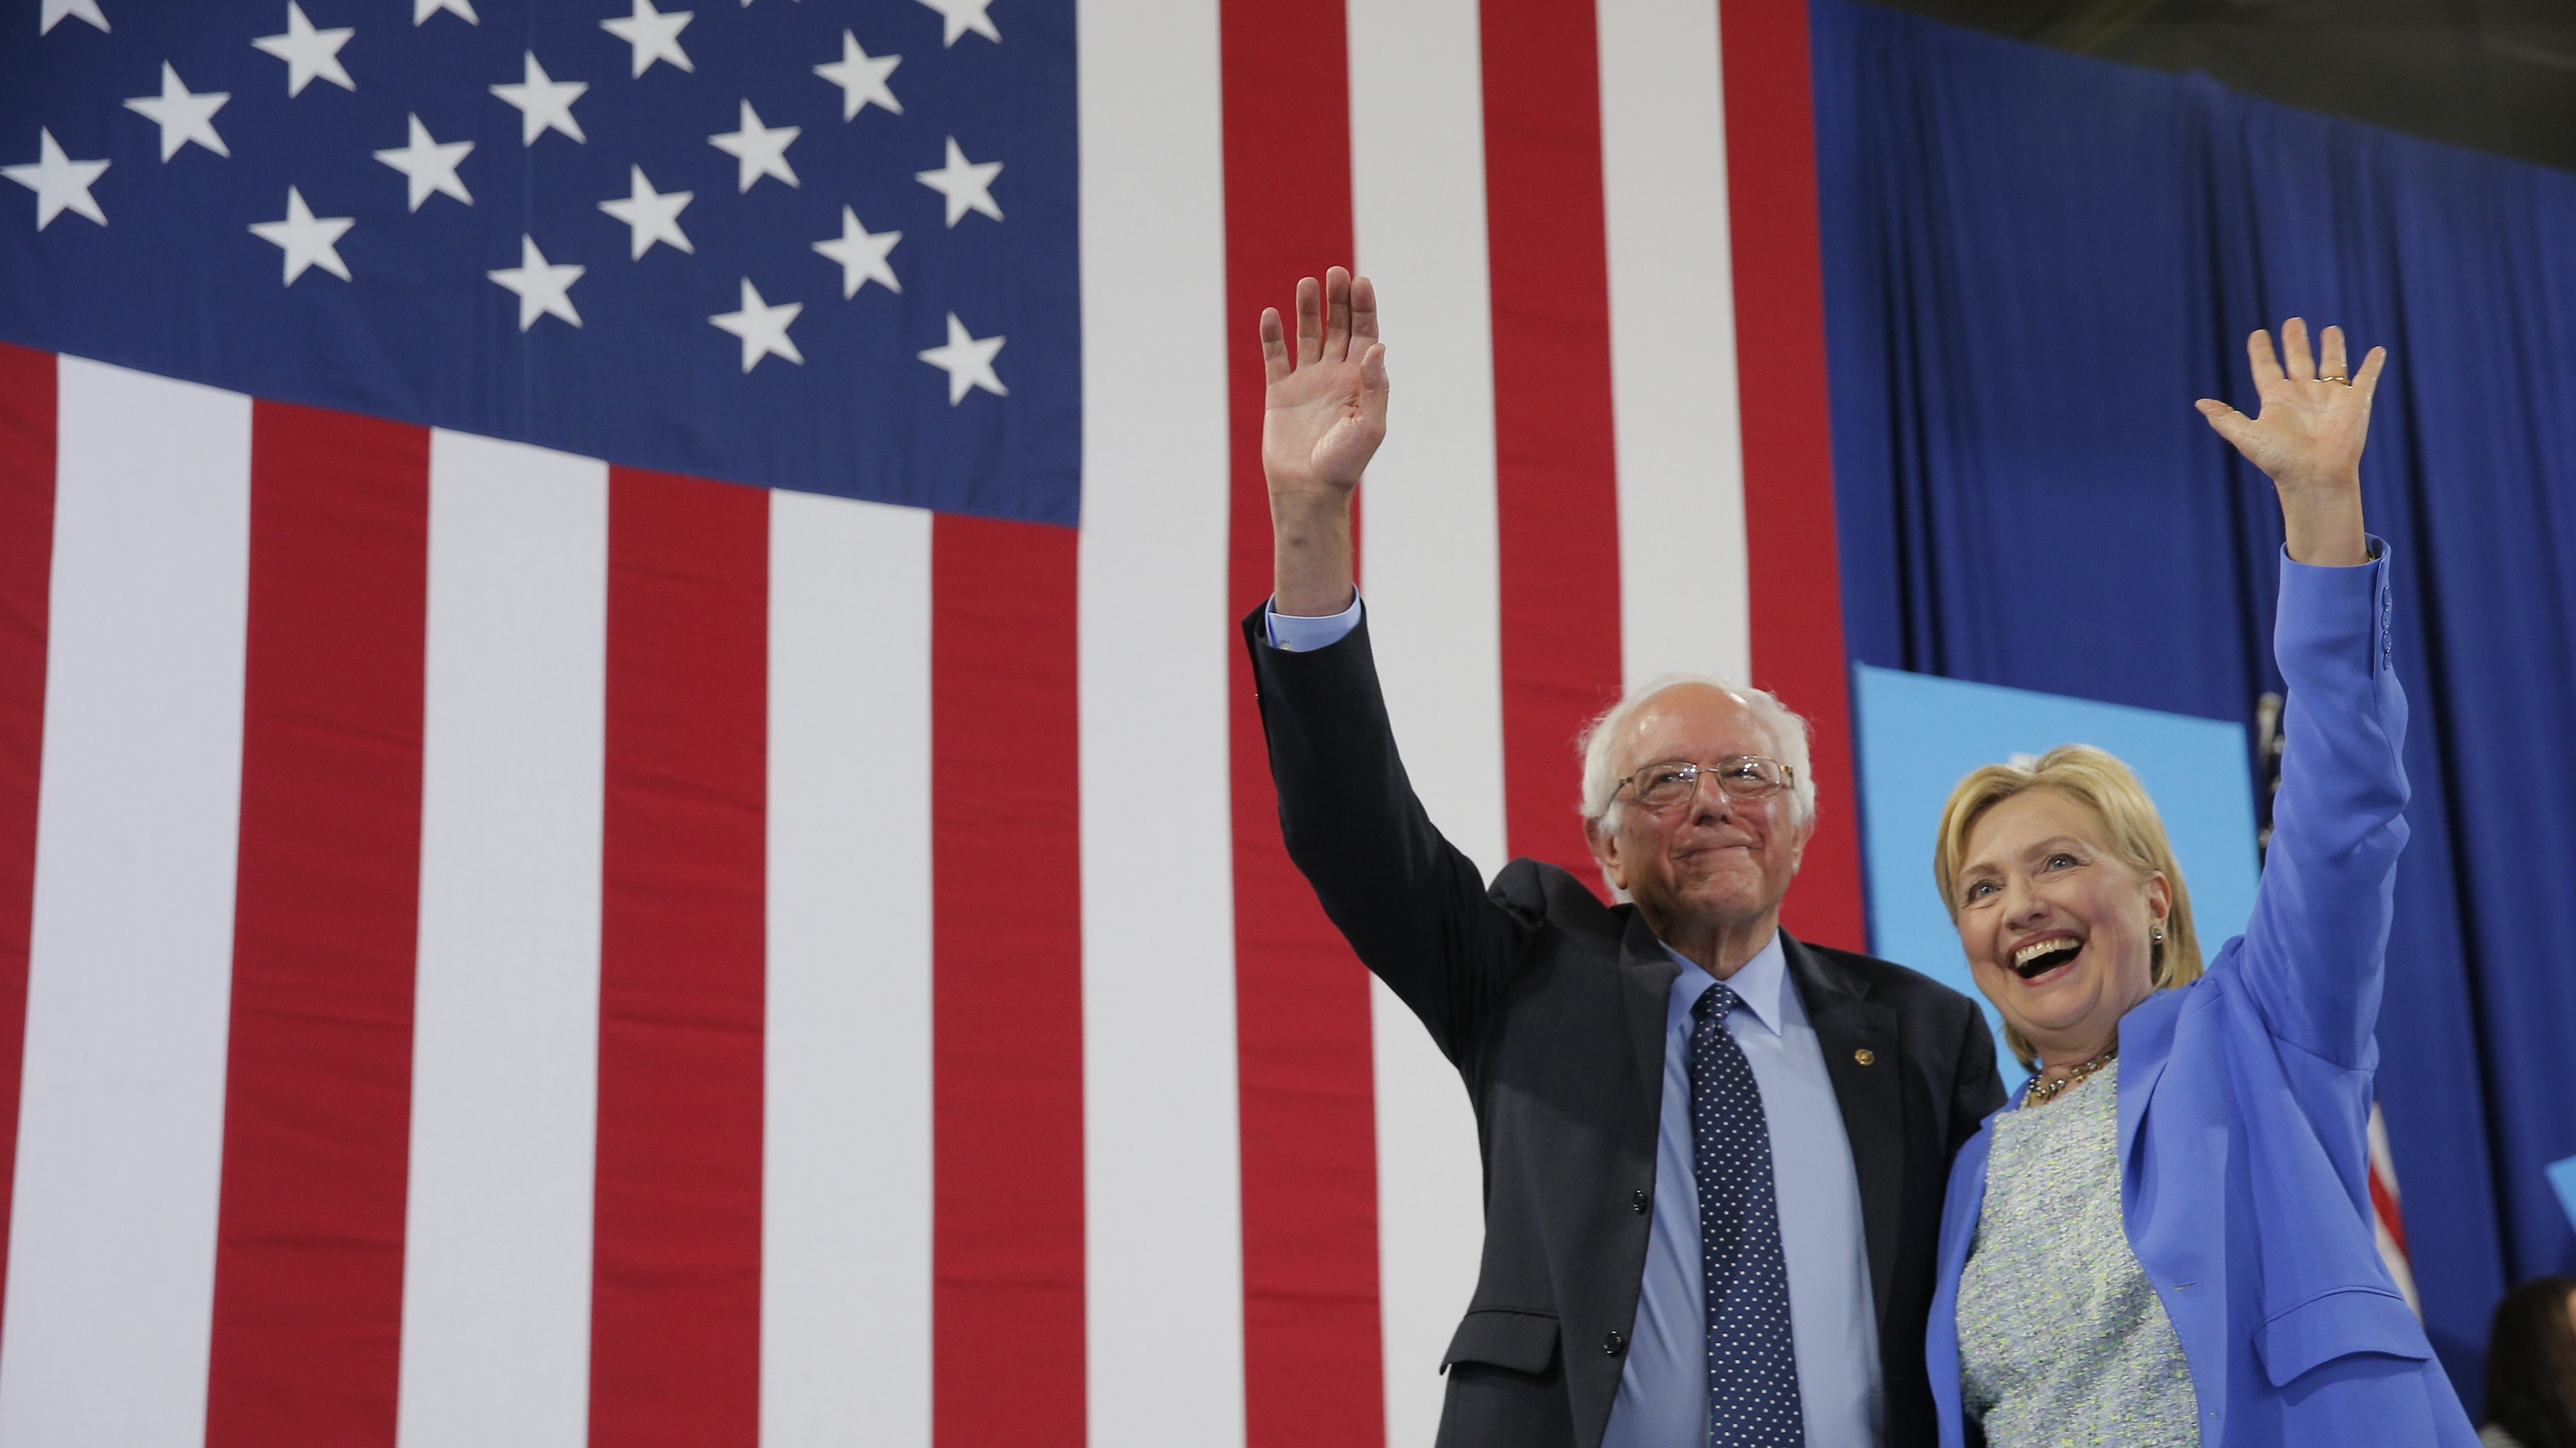 Democratic candidates Hillary Clinton (right), the presumptive nominee, and Bernie Sanders (left).